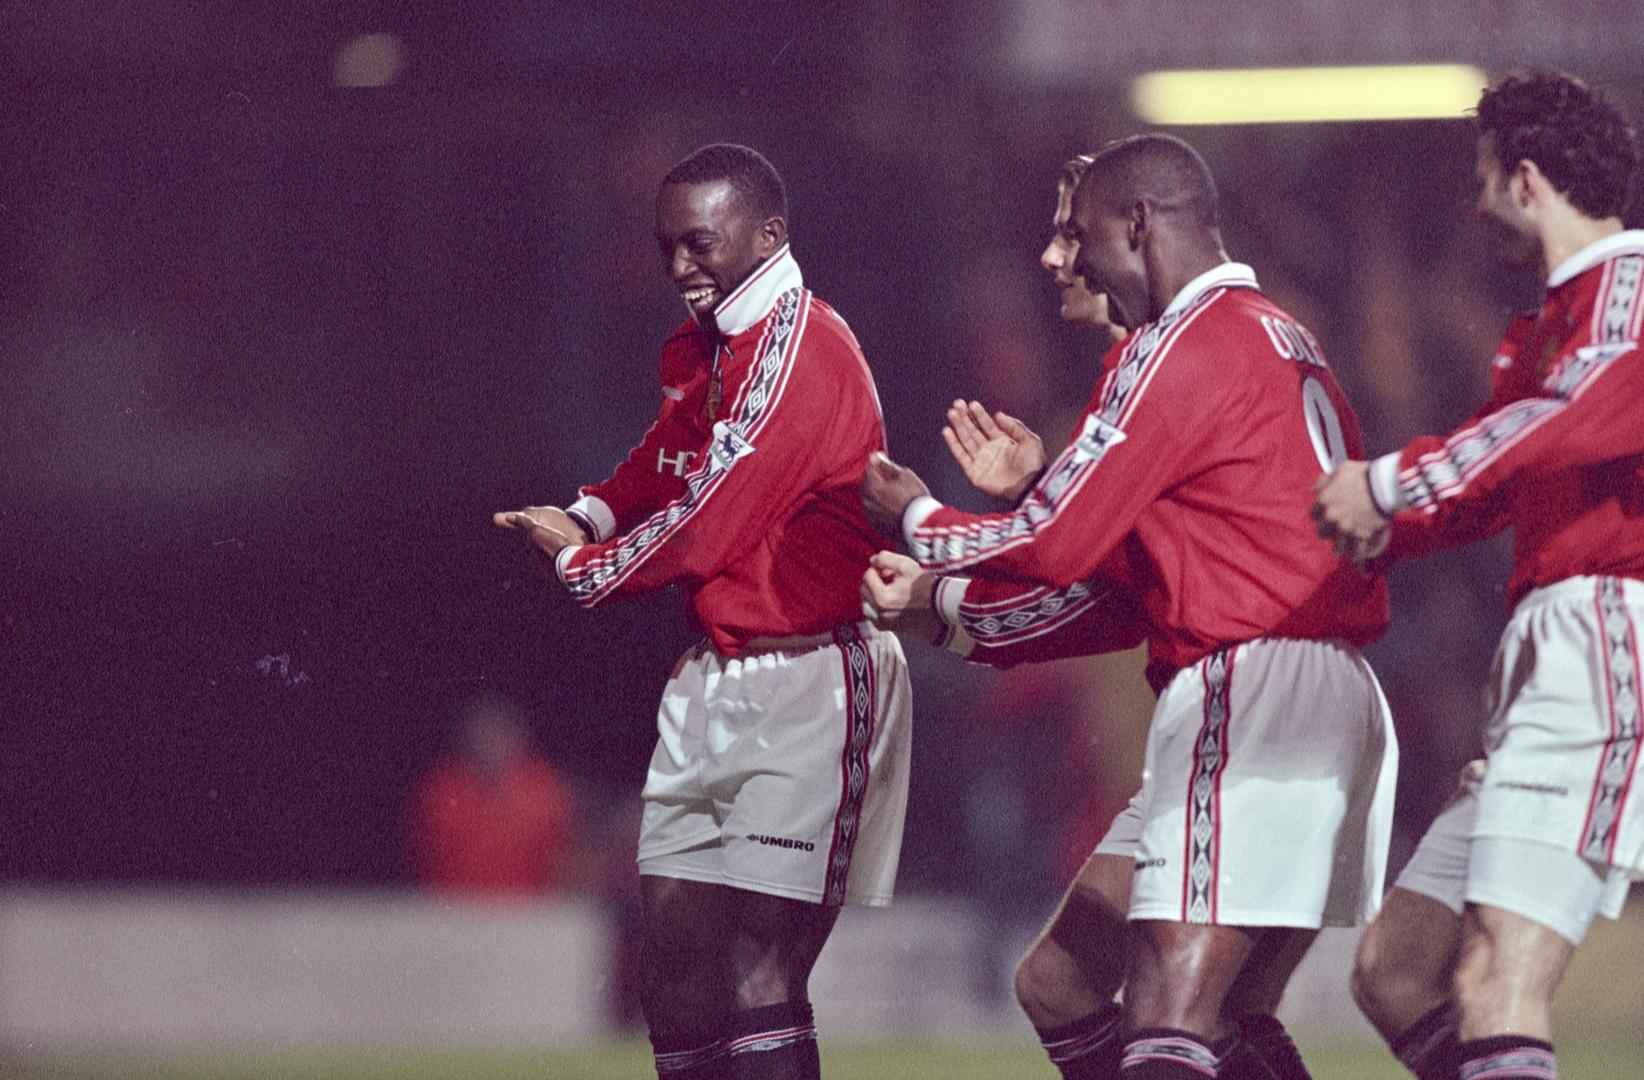 Dwight Yorke celebrates his goal against Chelsea in 1999.